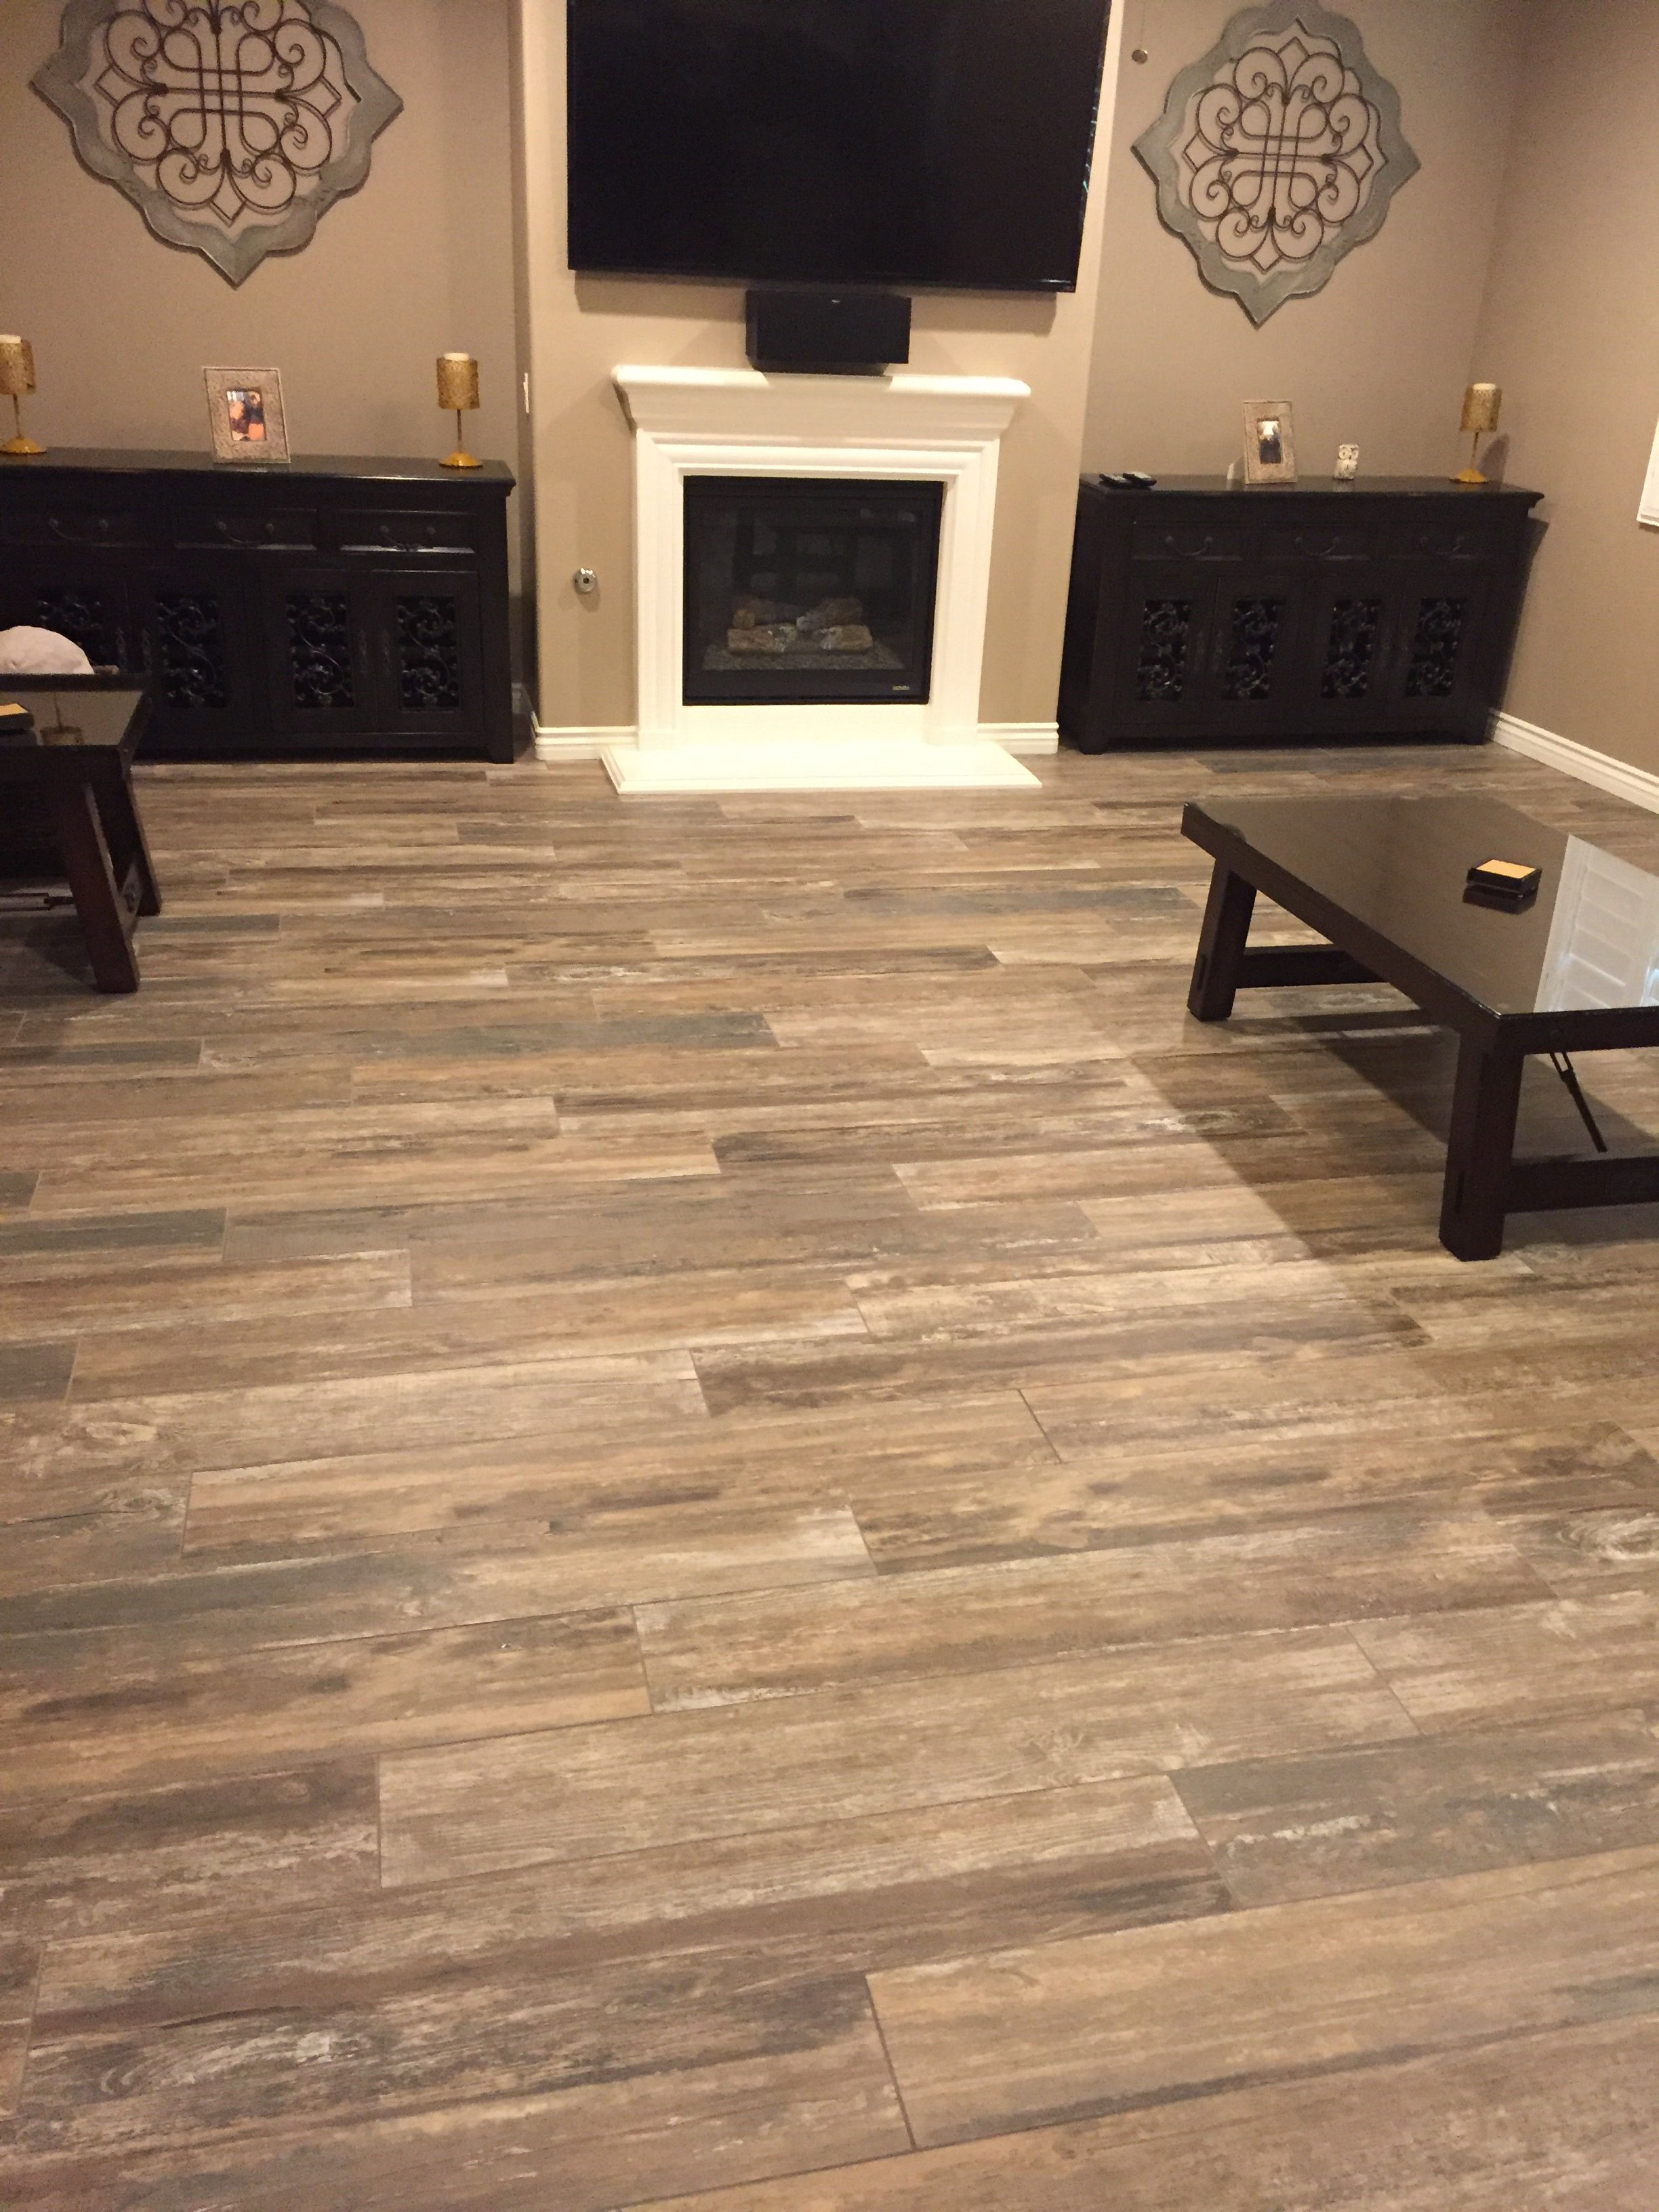 Hardwood Flooring Dalton Ga Of Pin by Meghan Stimpson On Office Pinterest House for 81d8a4b903a99ca9ea8aec636dd5e775